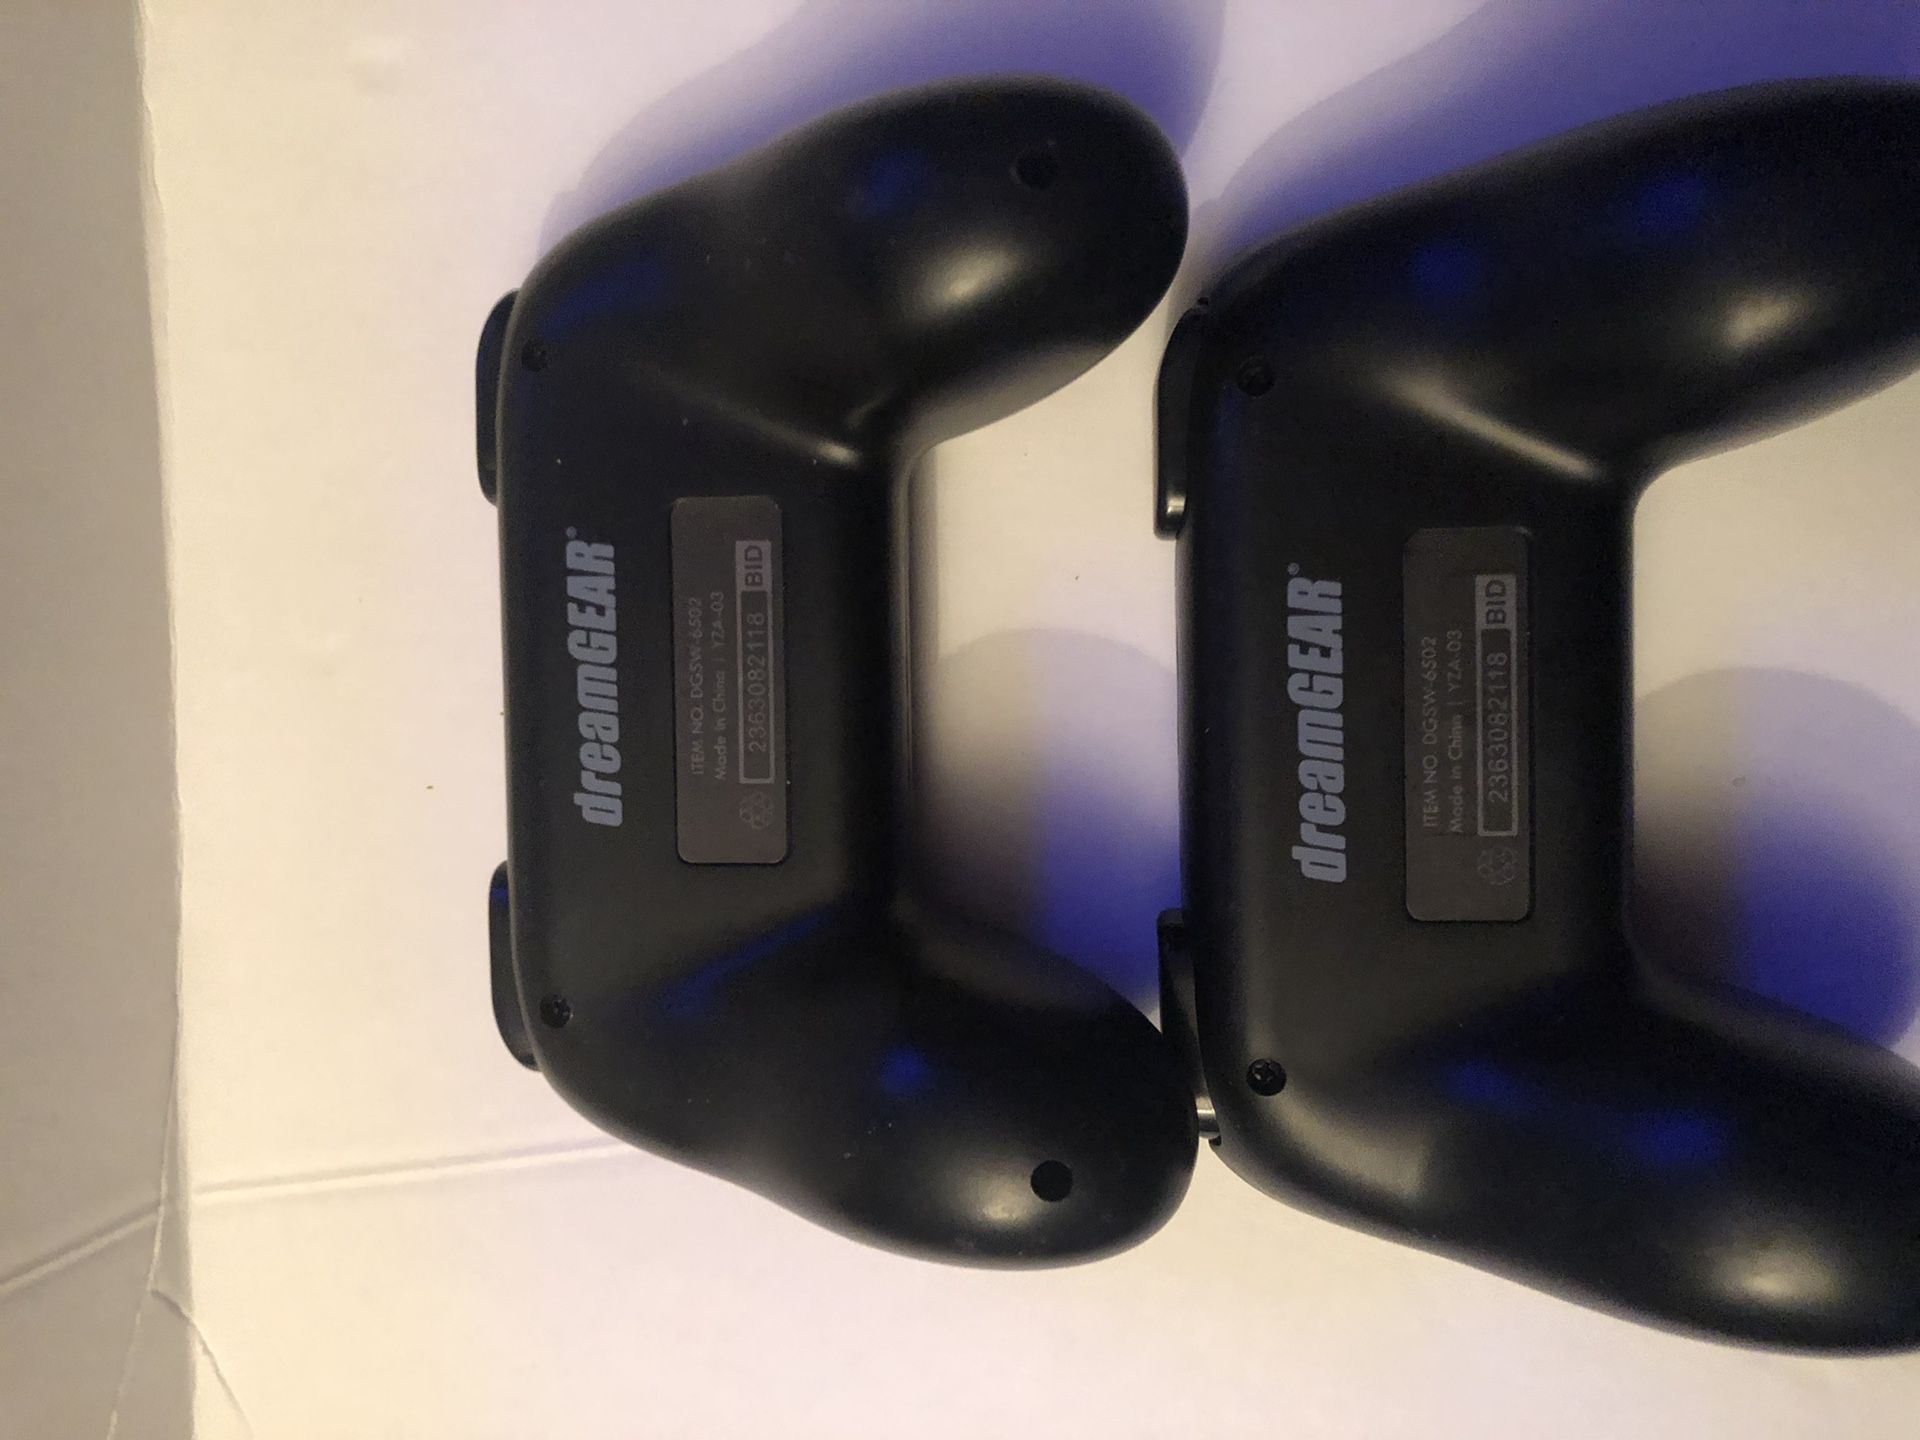 Nintendo Switch controller inserts